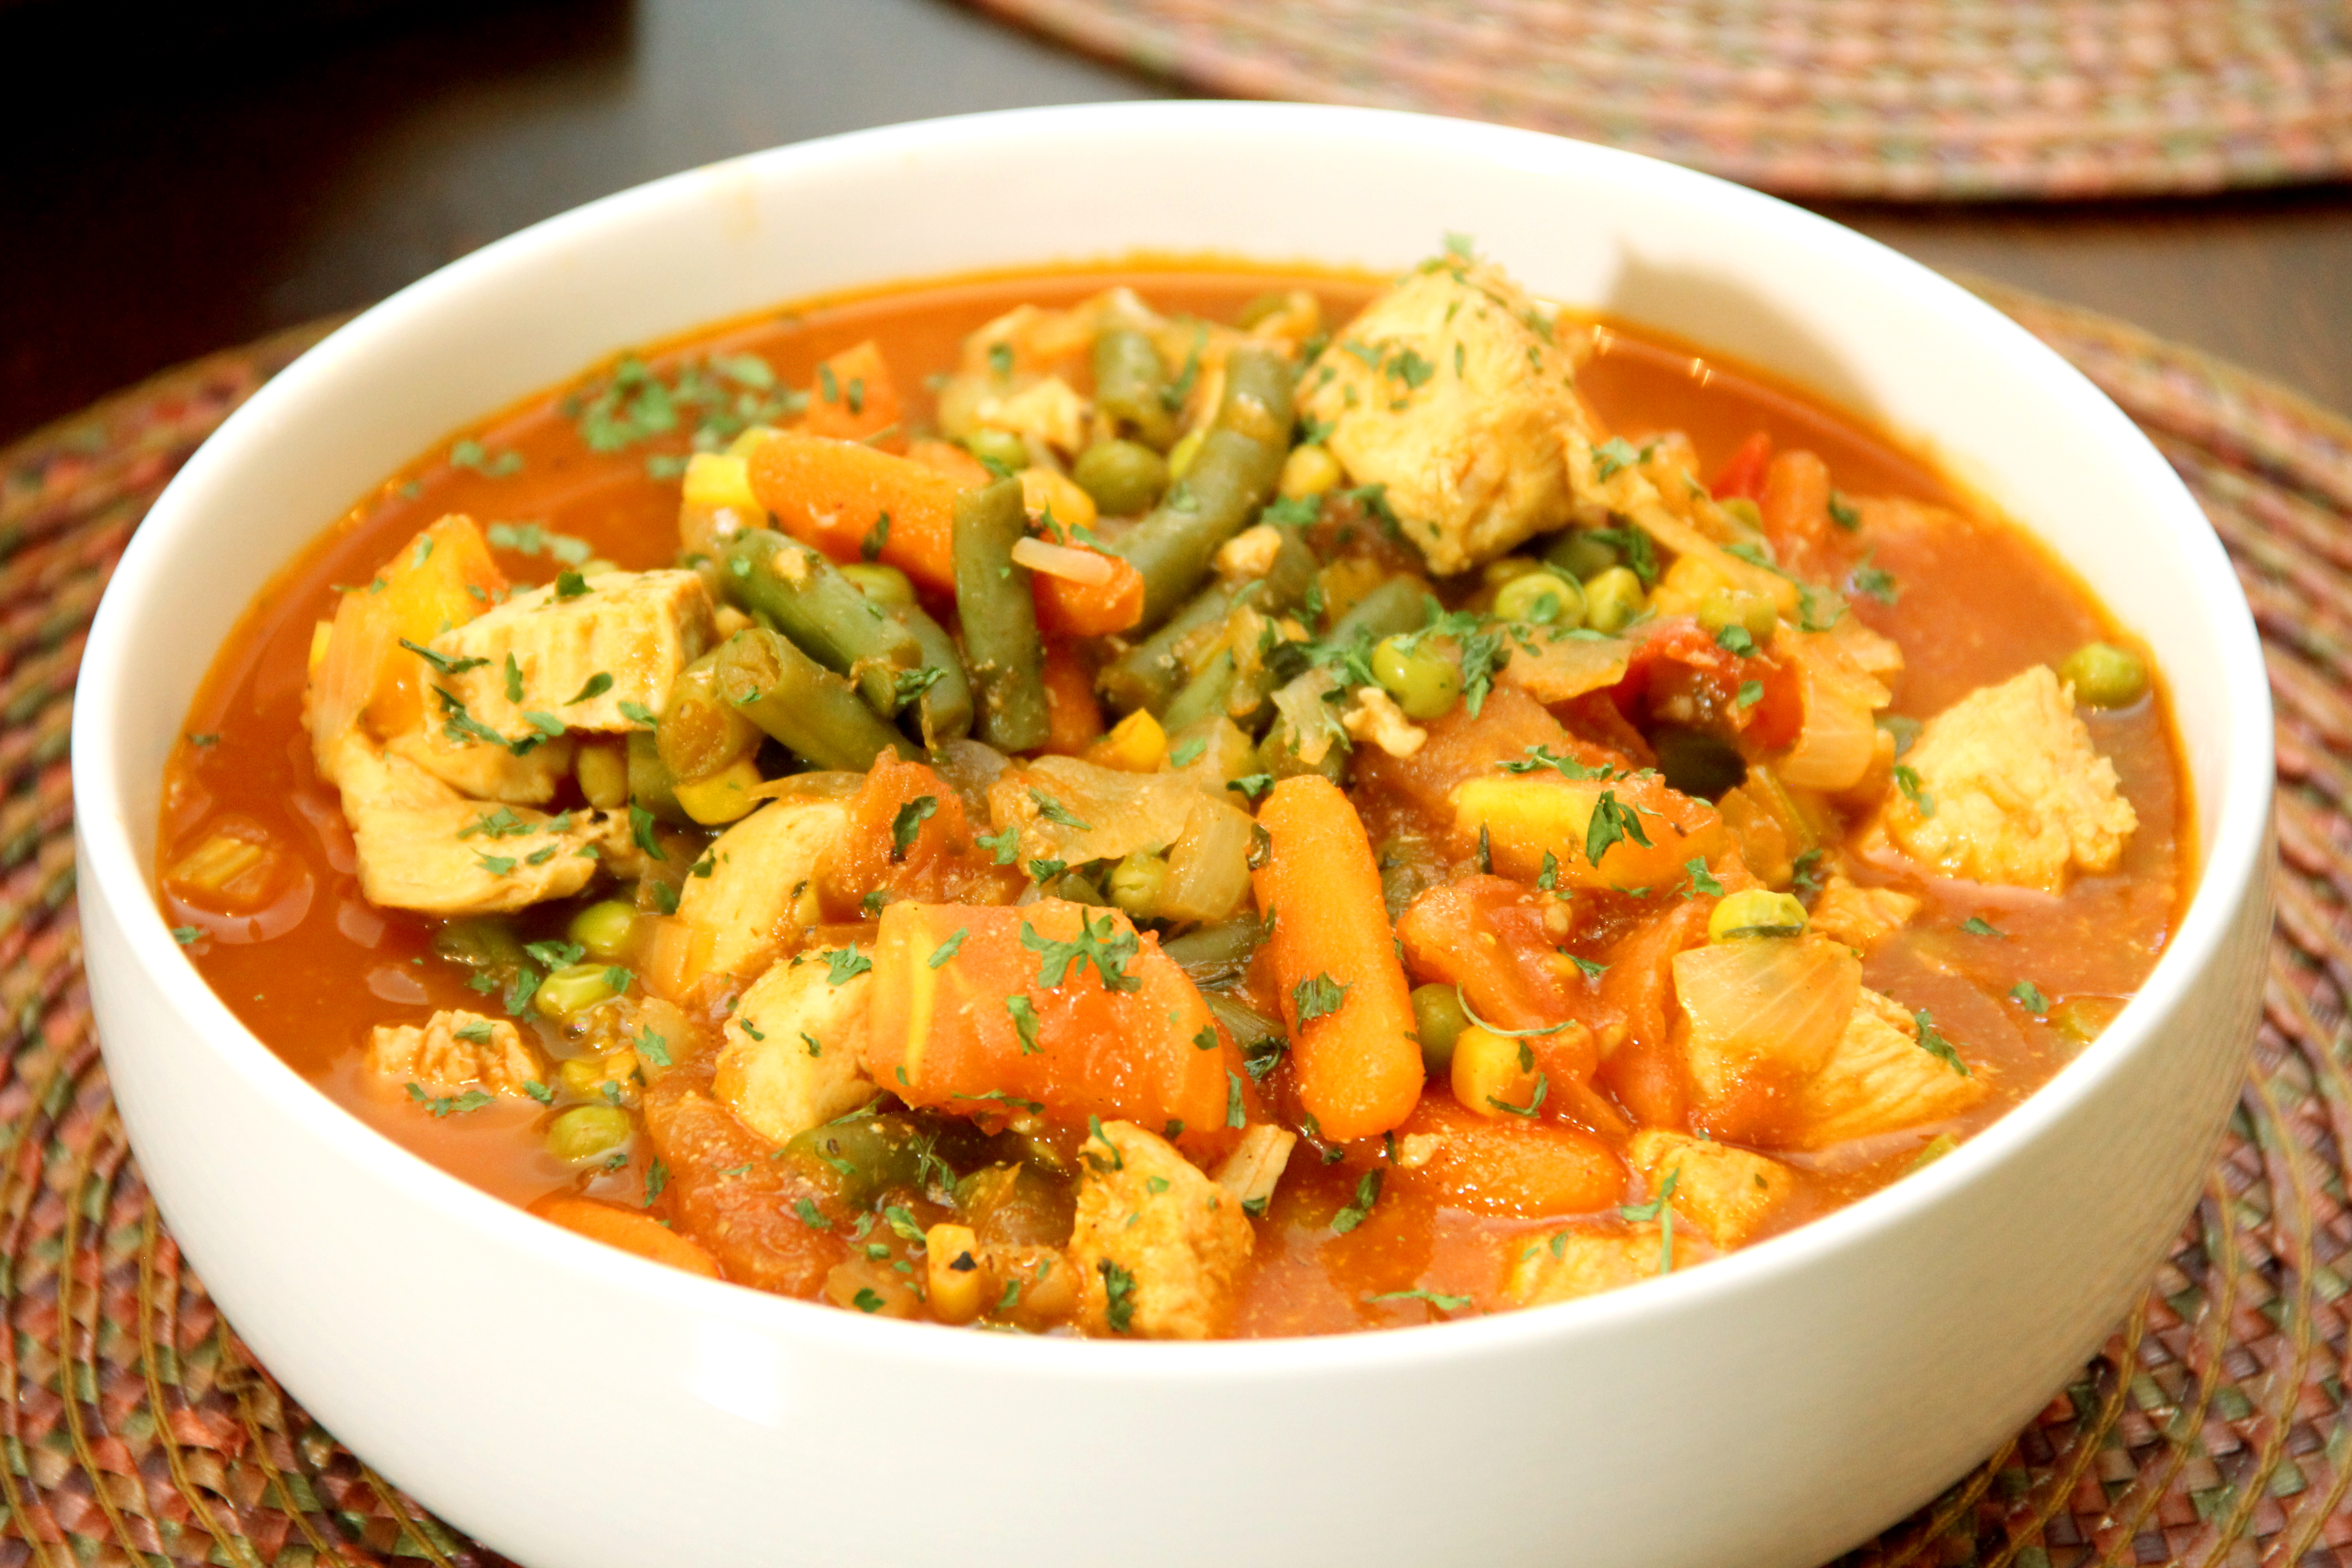 Amazing Chicken Vegetable Stew Recipe - I Just Like To Cook